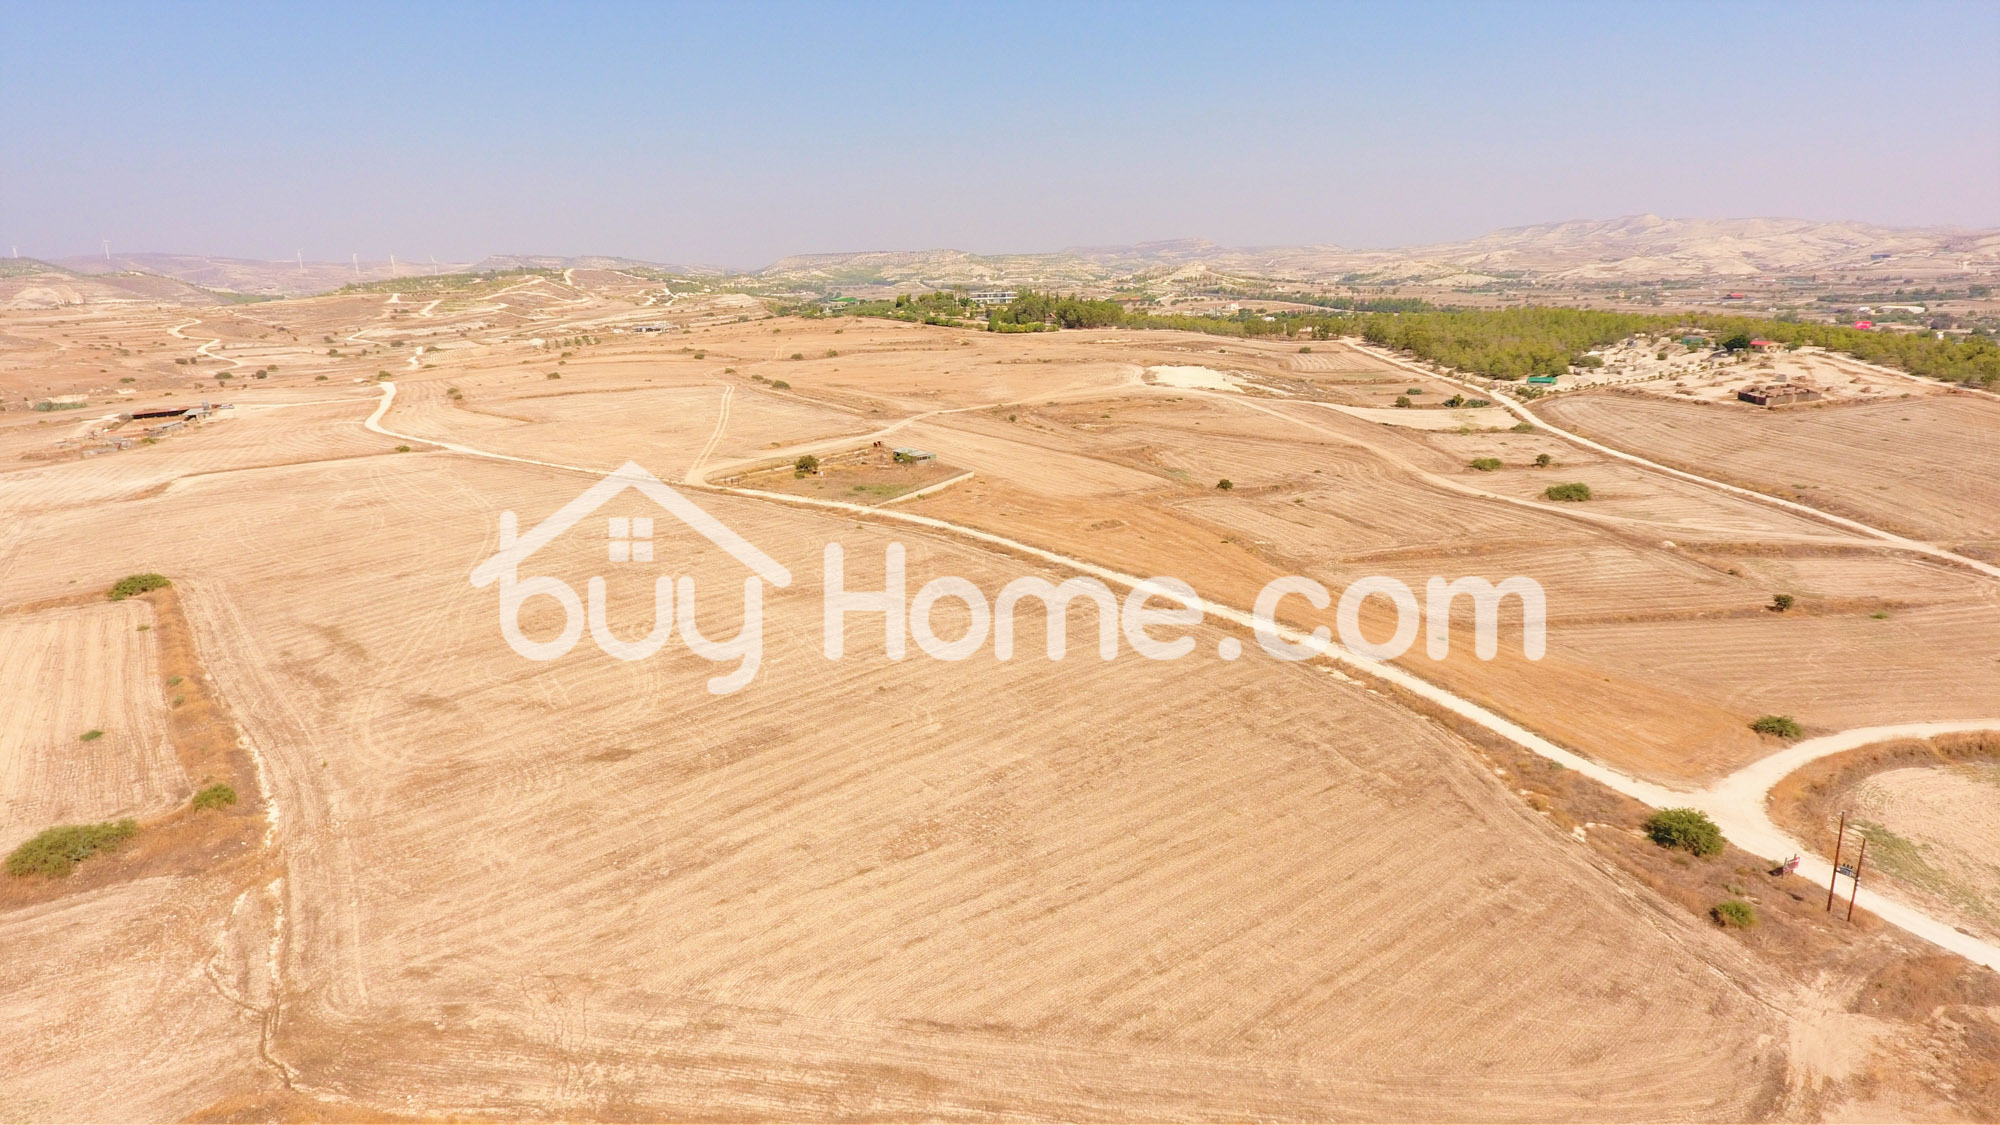 Pascal Agricultural land | BuyHome